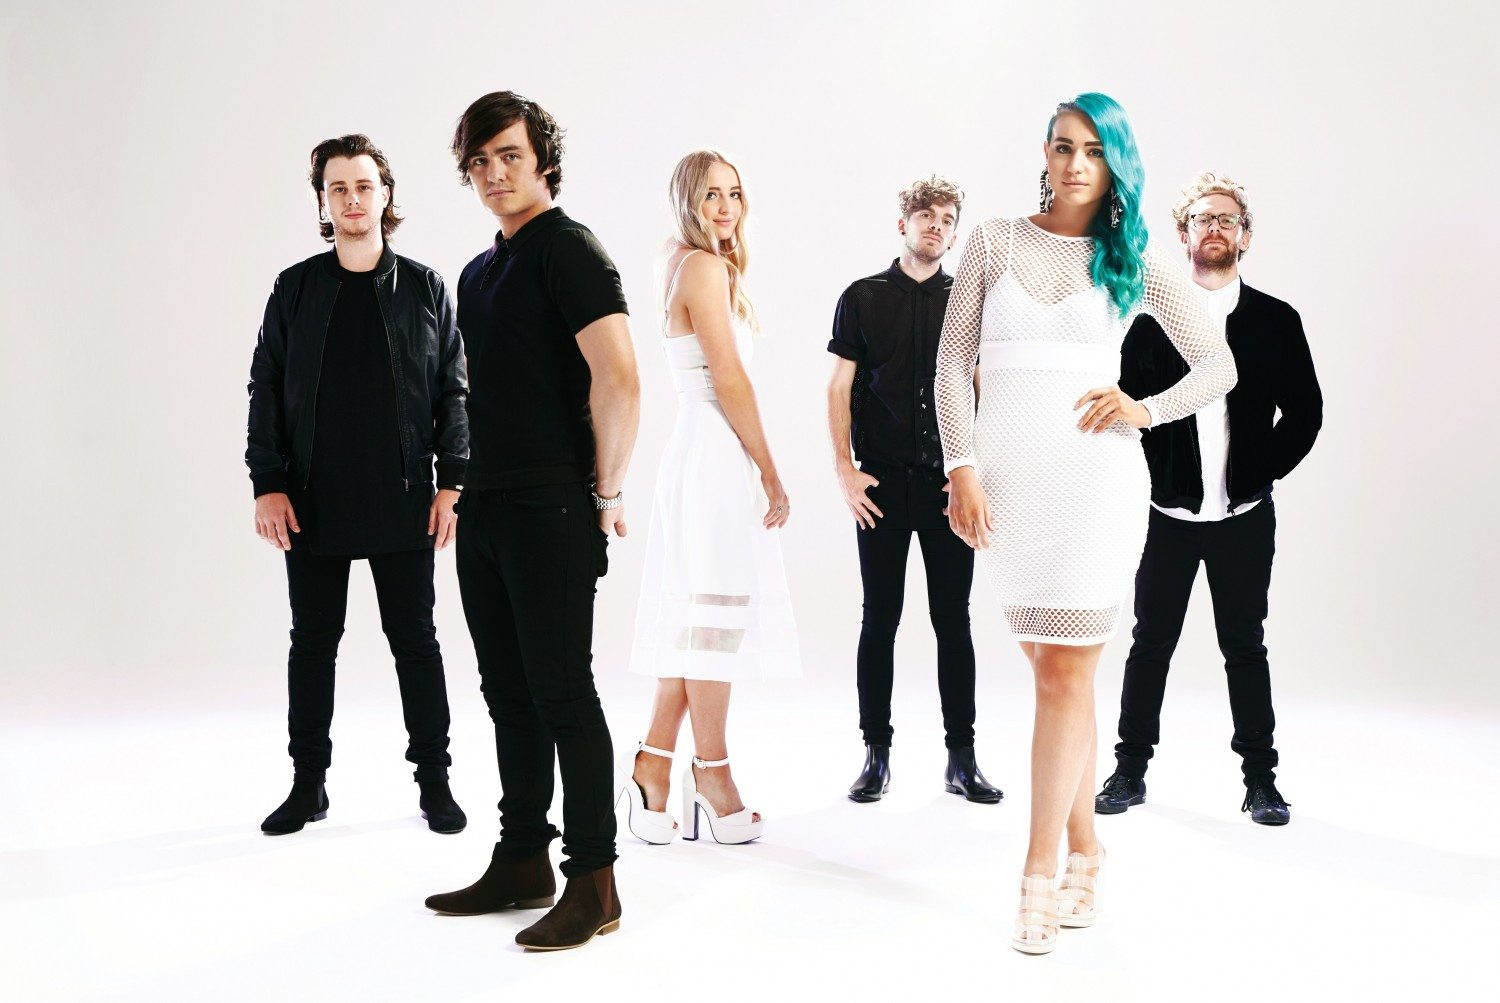 Sheppard has over 140 million Spotify streams, is ready for Webster Hall